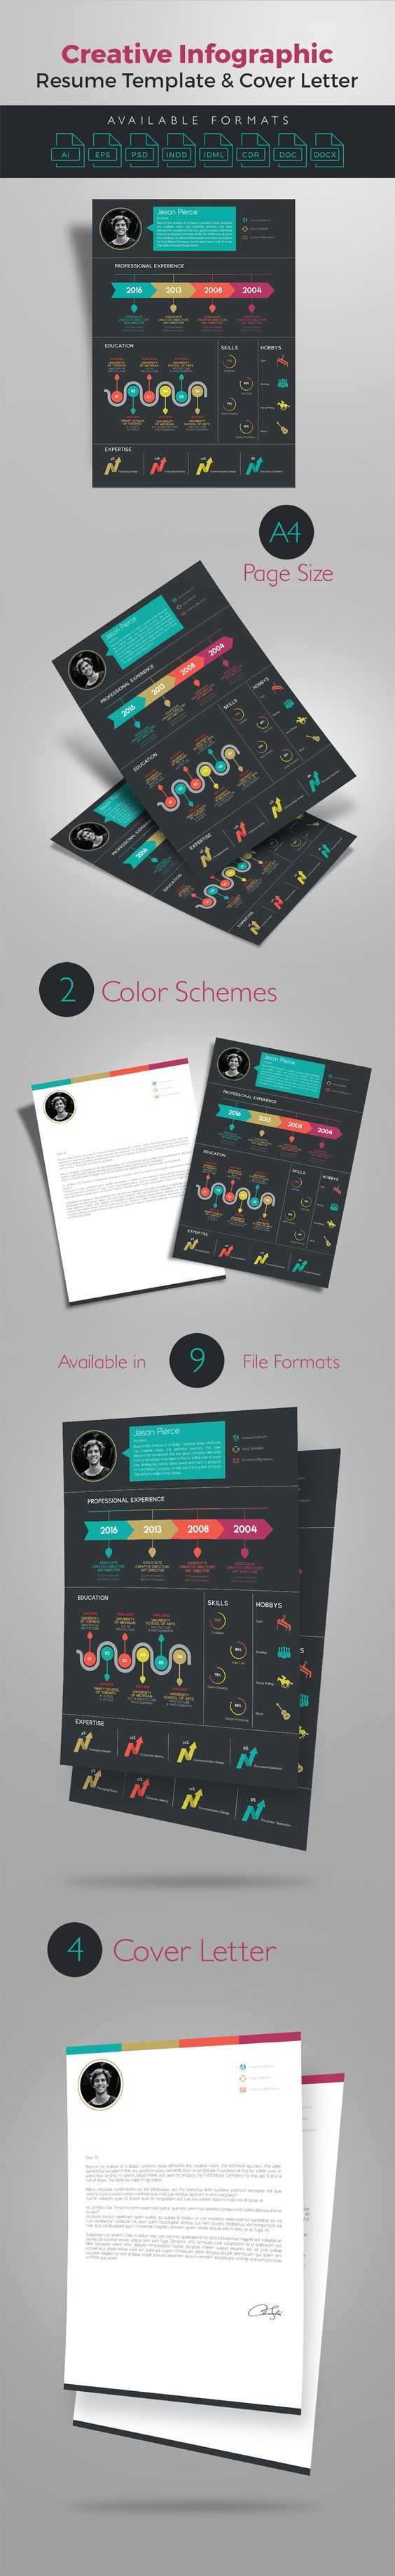 general laborer resume%0A Creative Infographic Resume Template With Cover Letter